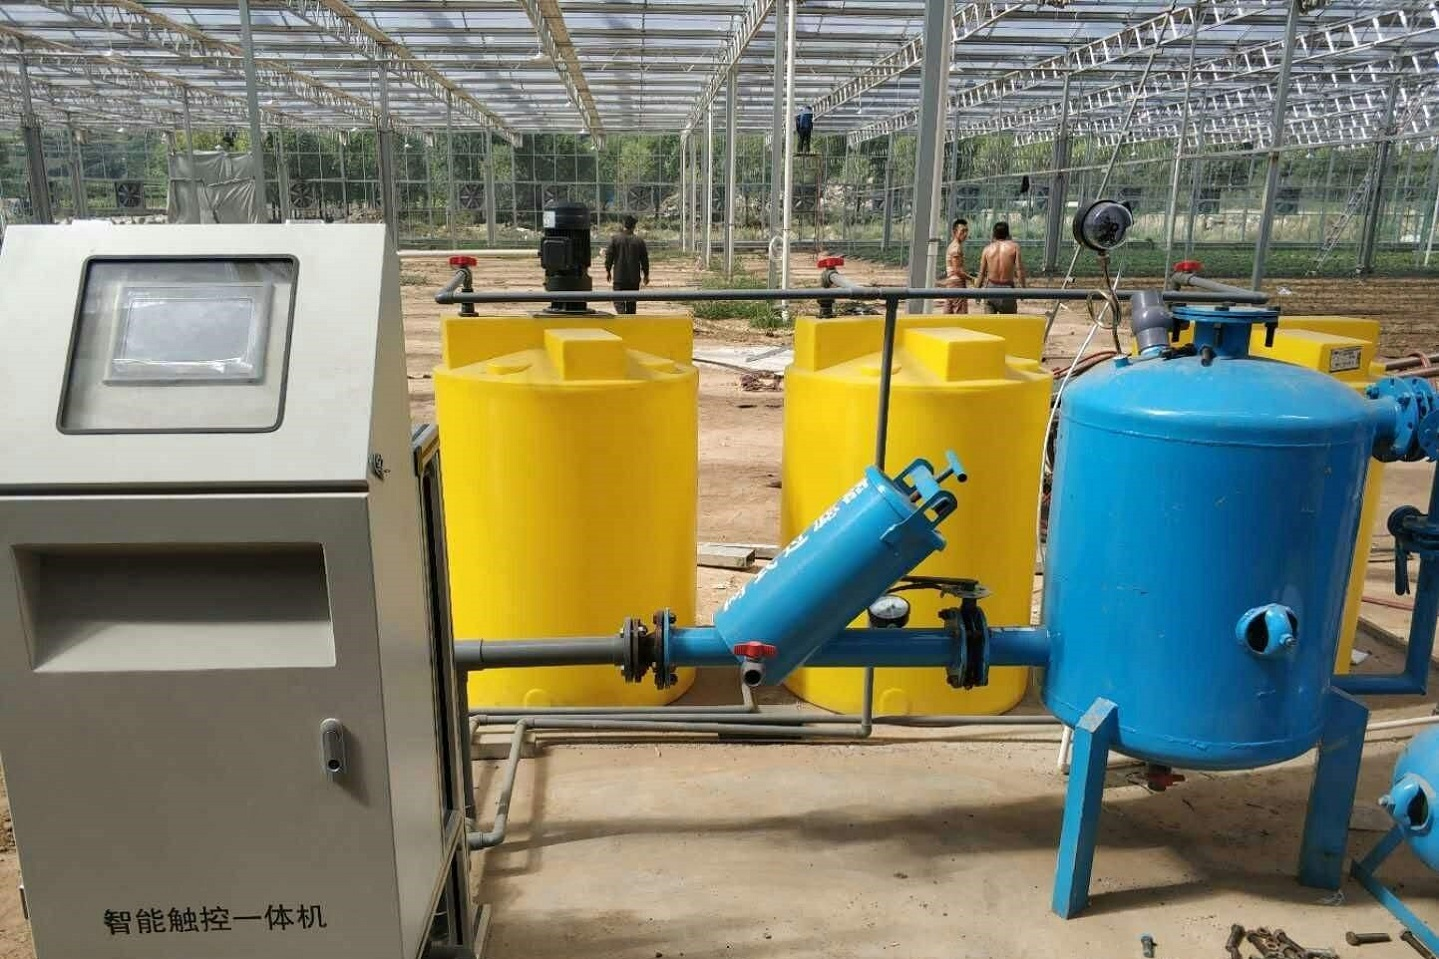 Efficient Drip Arrow Irrigation System for Greenhouse